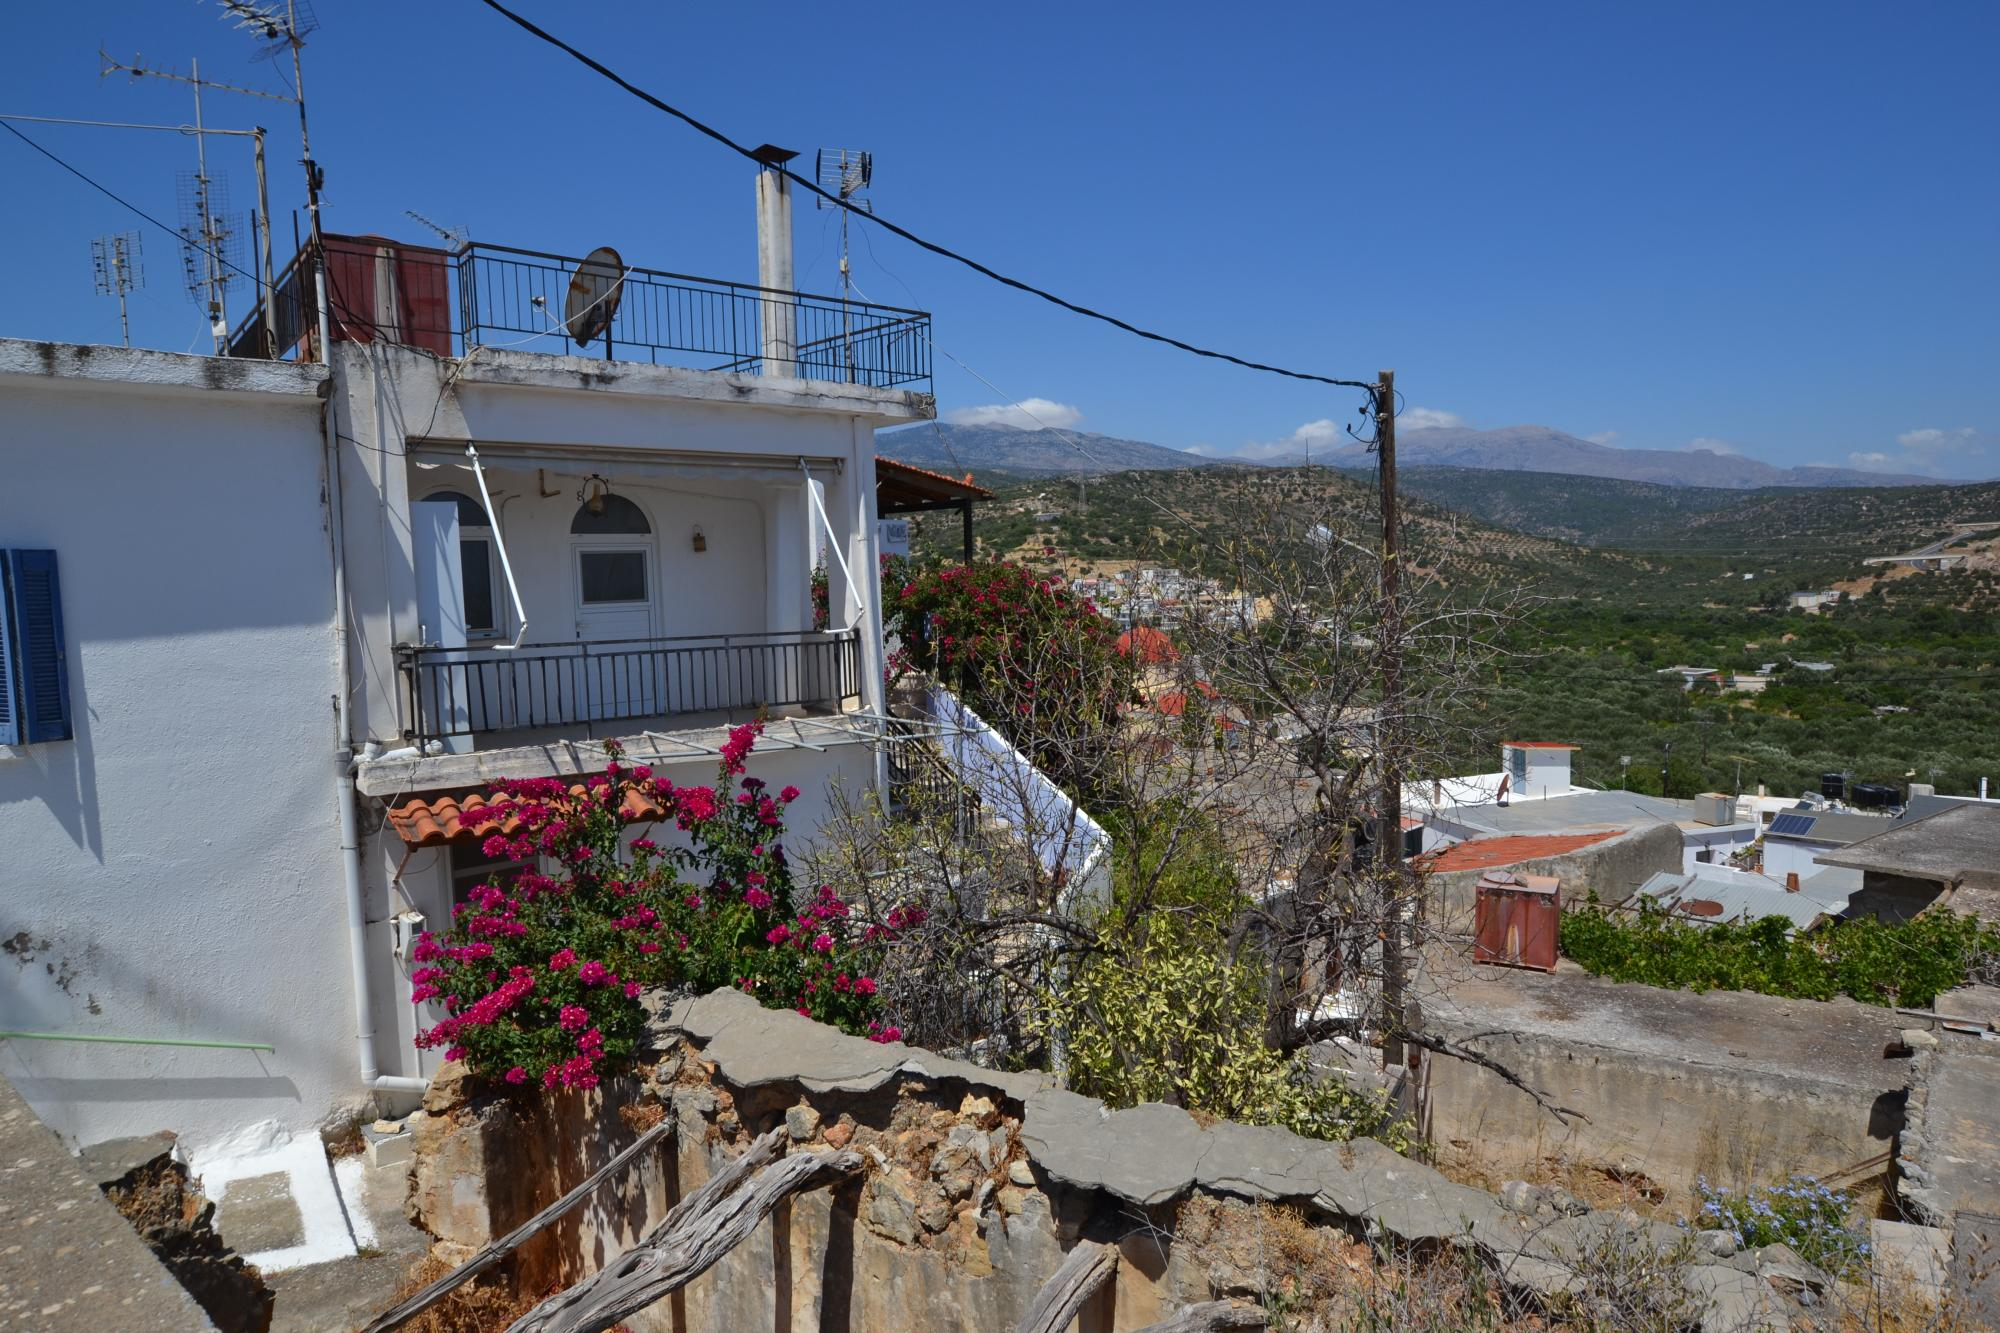 House for renovation with sea views from balcony and roof terrace.